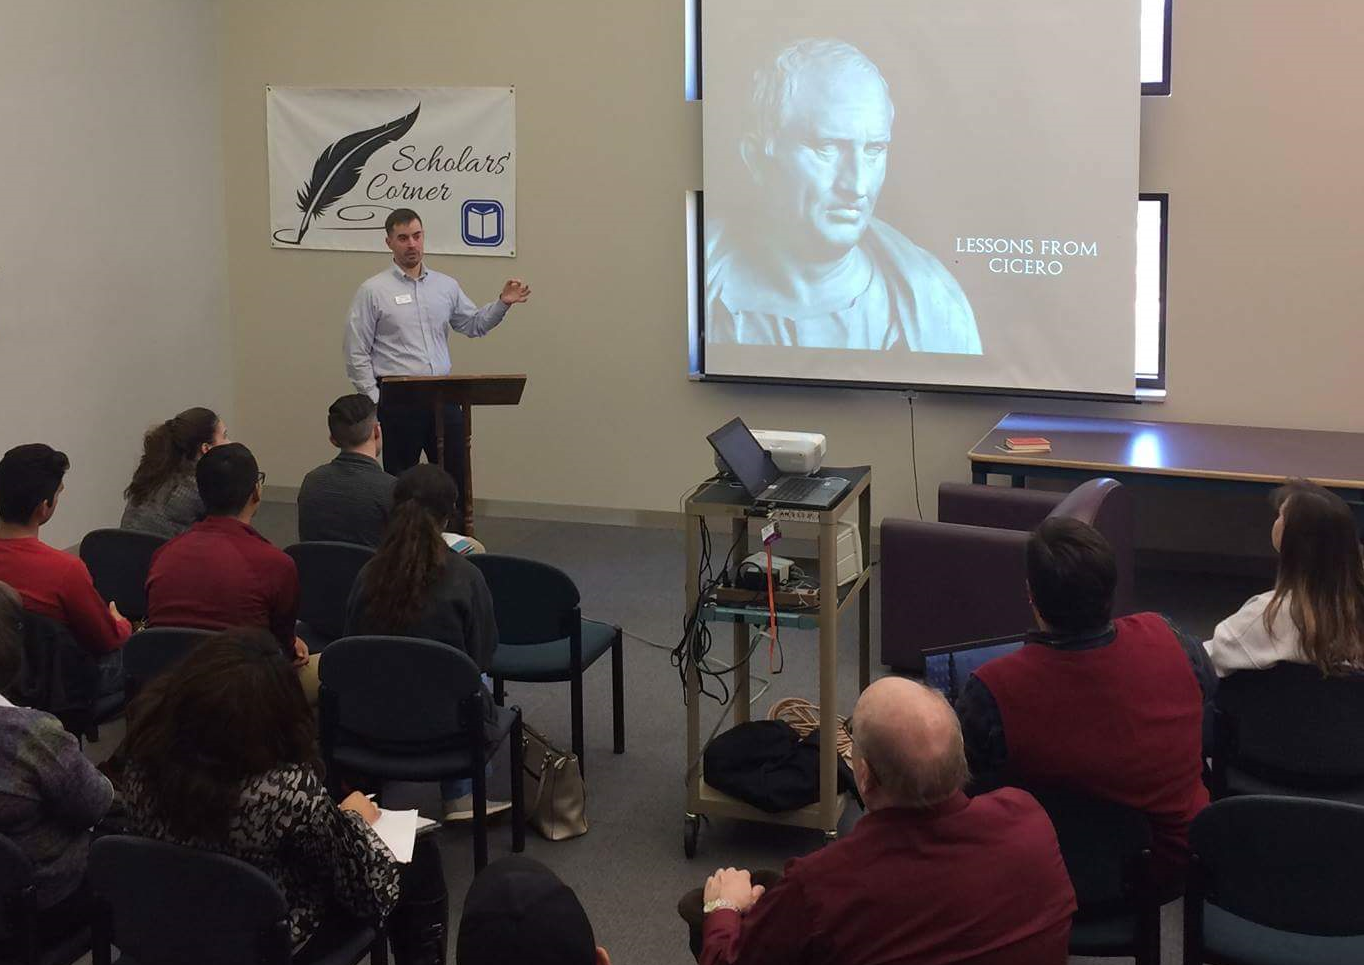 Lecturing on the life and virtues of cicero at the greenville tech library, spring 2017.